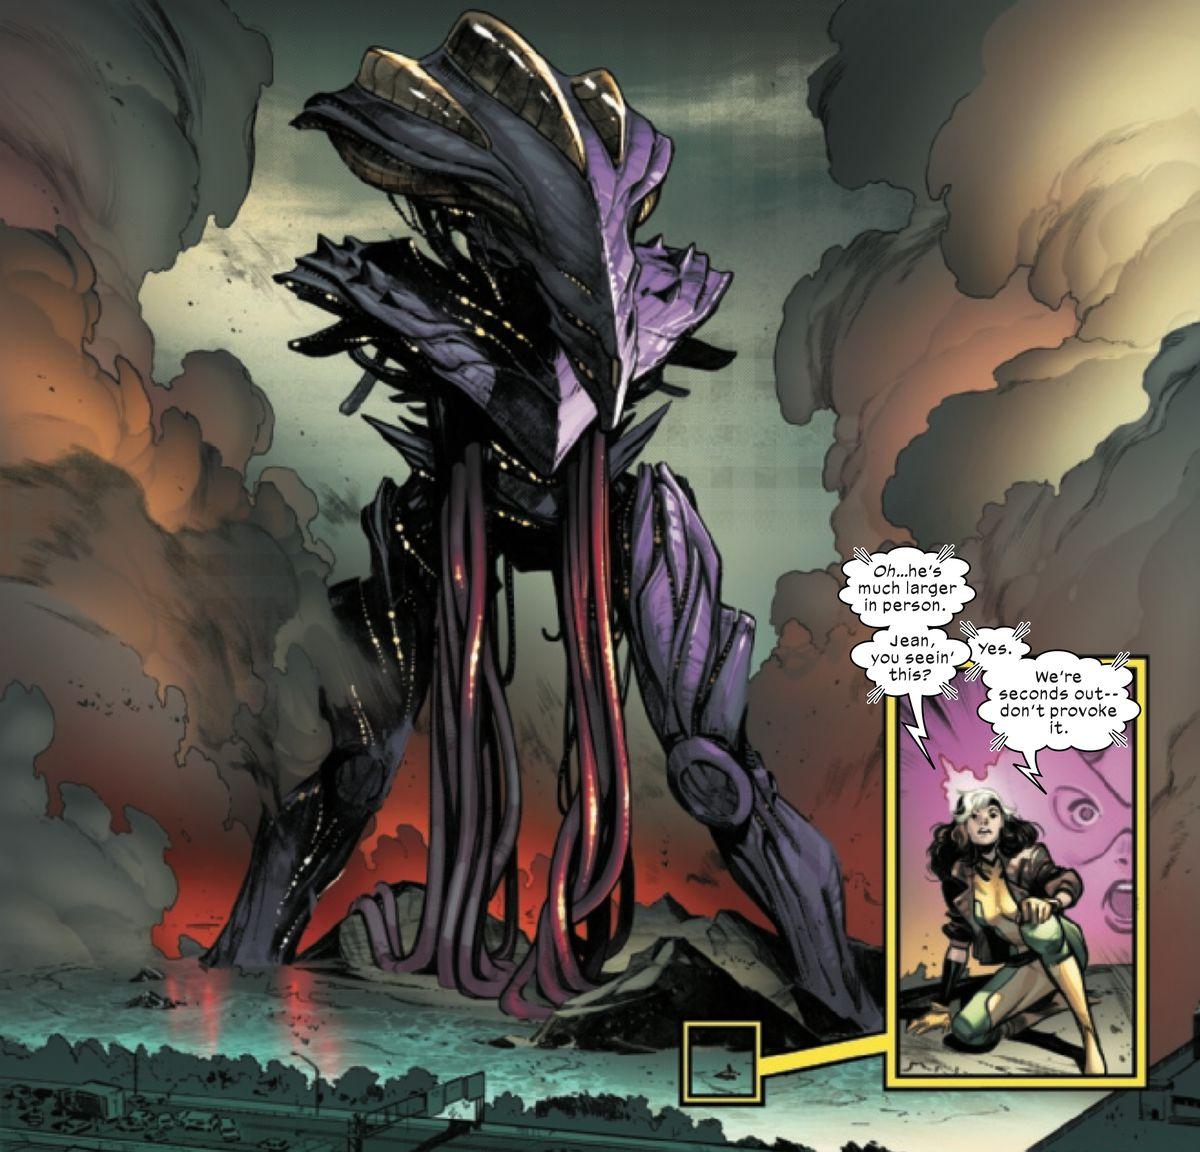 Rogue is a tiny figure, magnified in an inset panel, in front a huge, armored and tentacled monster that towers over a New York highway in X-Men #1 (2021).